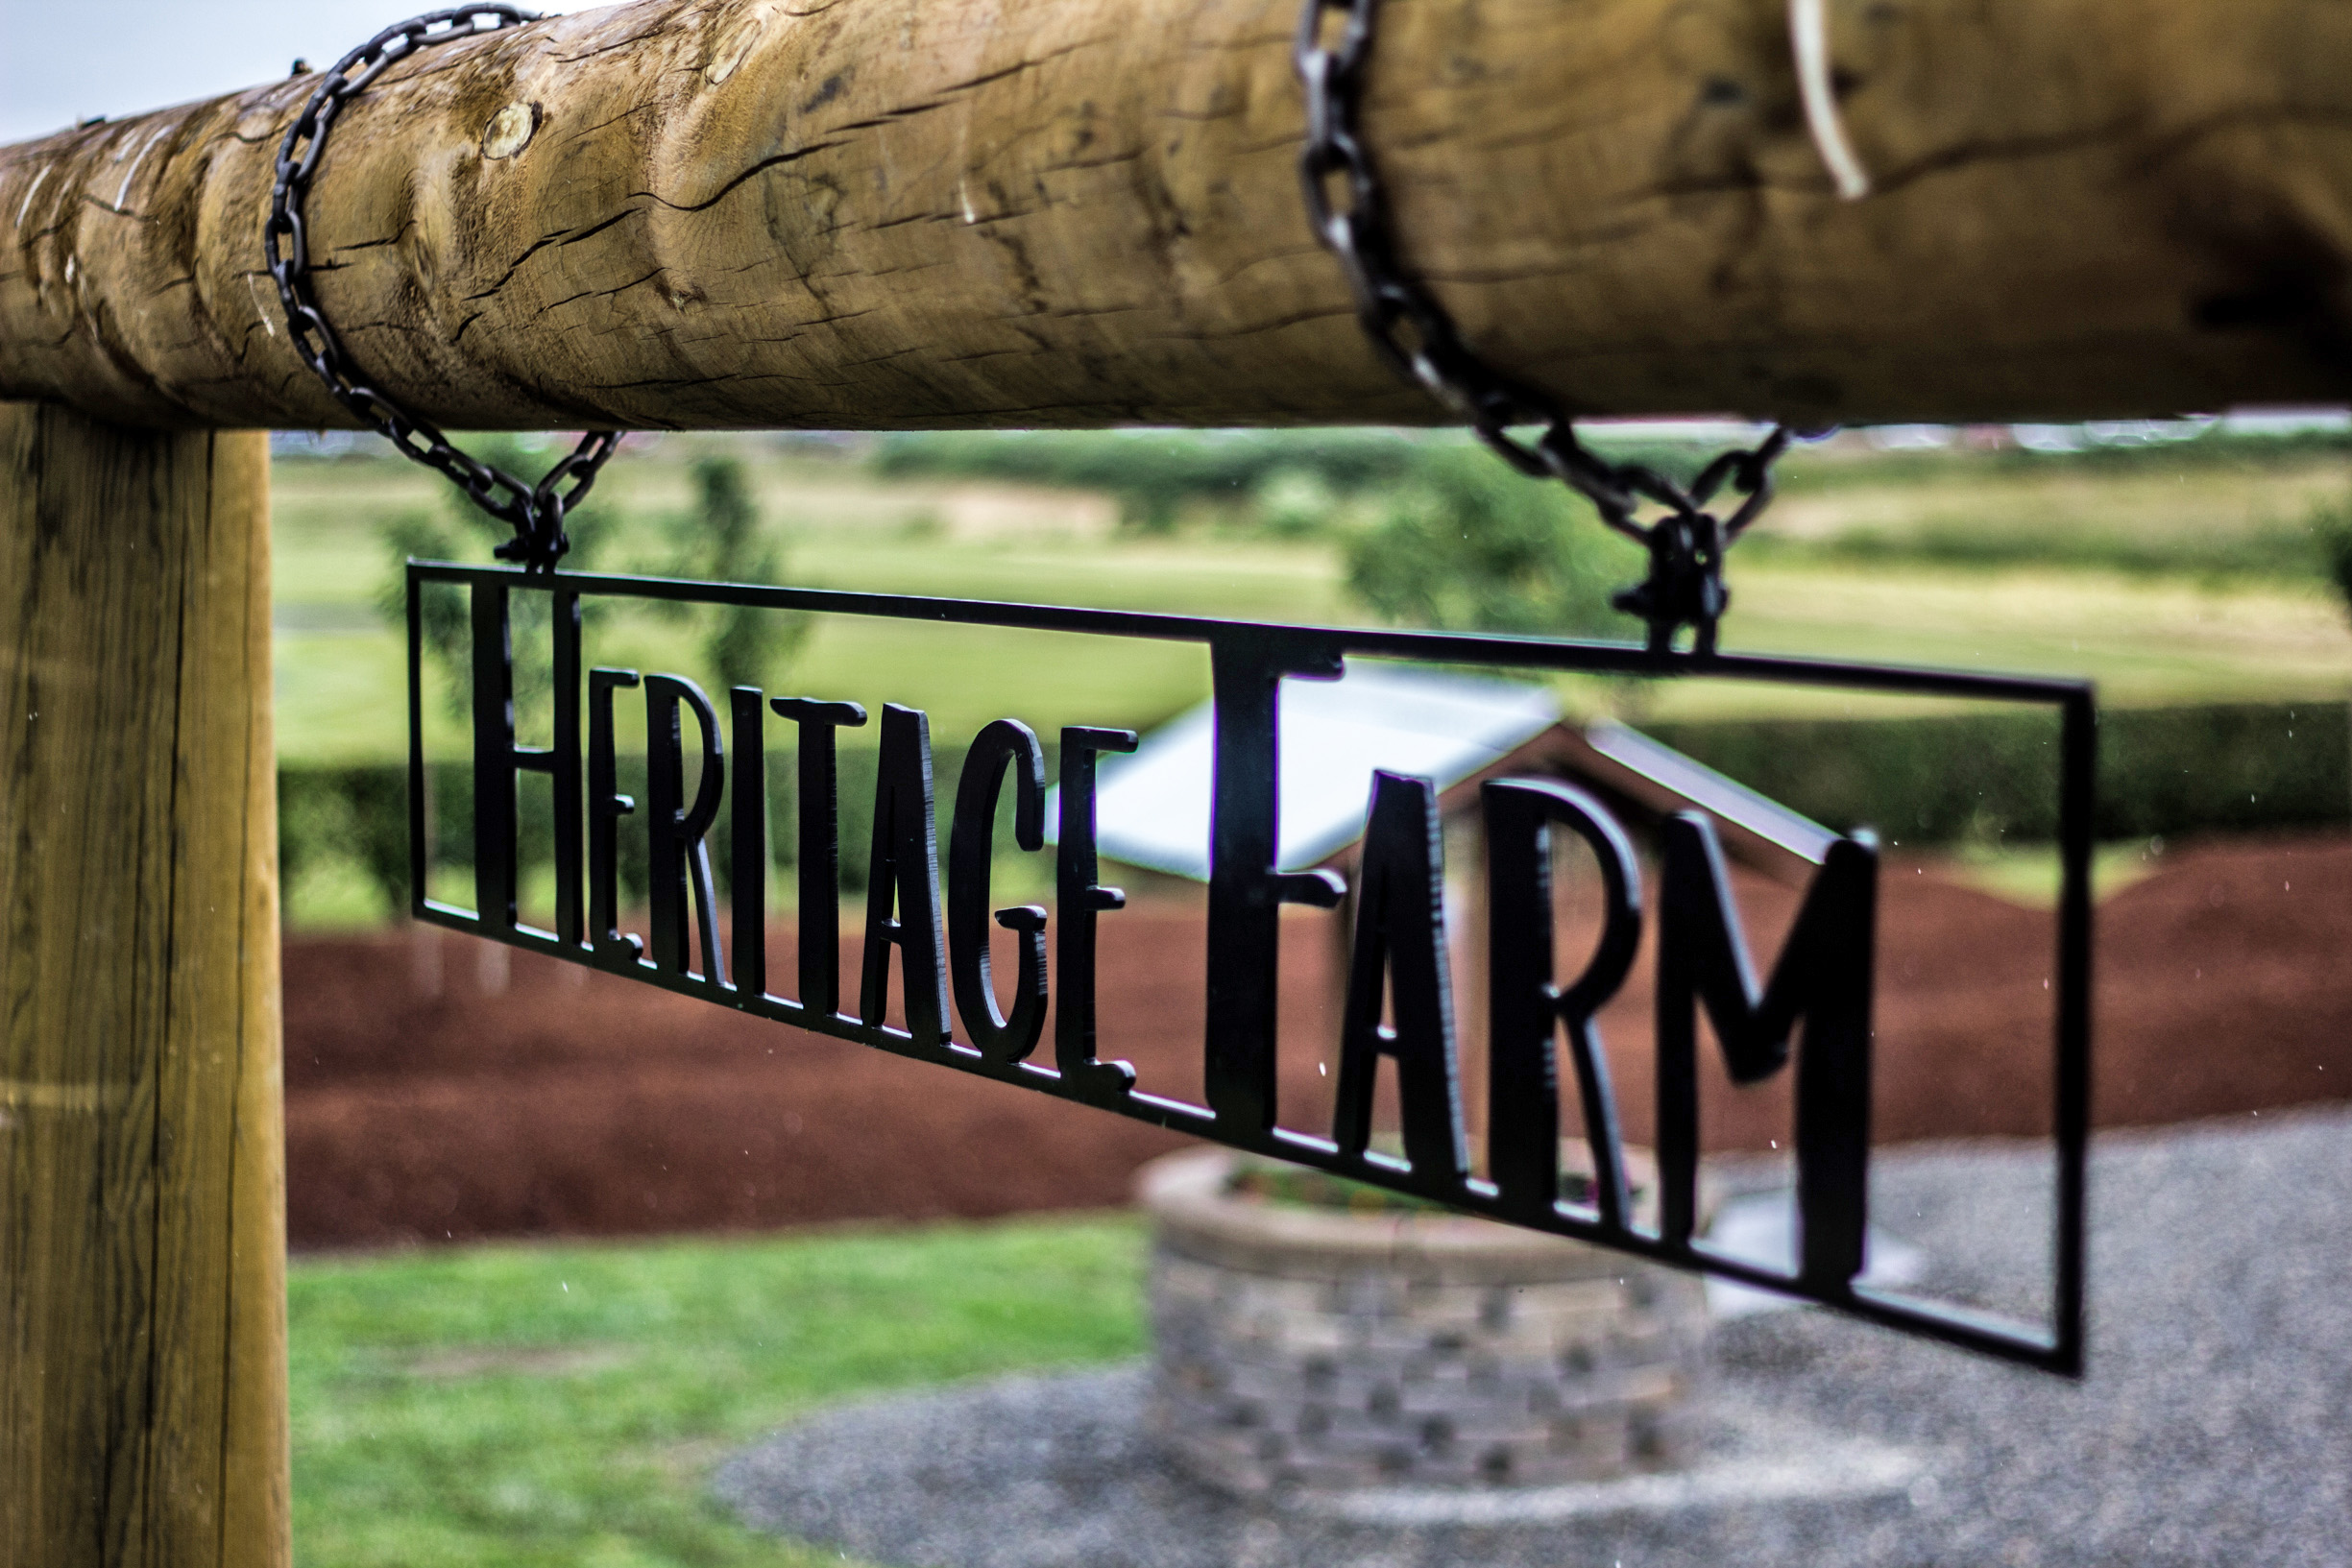 Heritage.Farm.Clarity.3